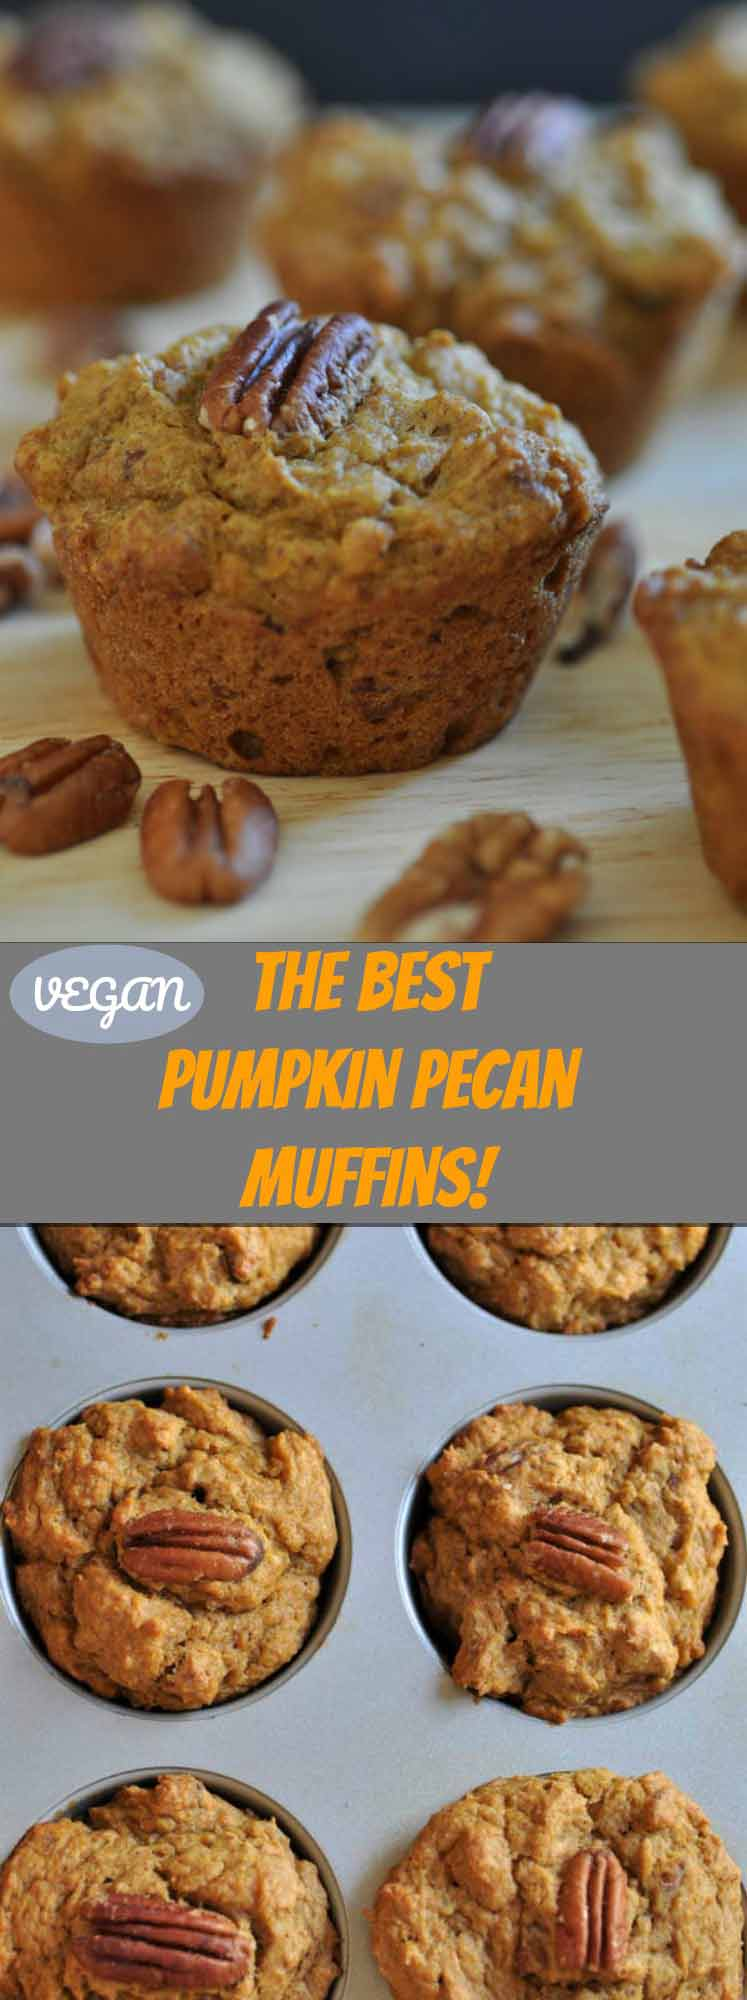 Delicious vegan pumpkin pecan muffins! Dairy-free and easy to make.